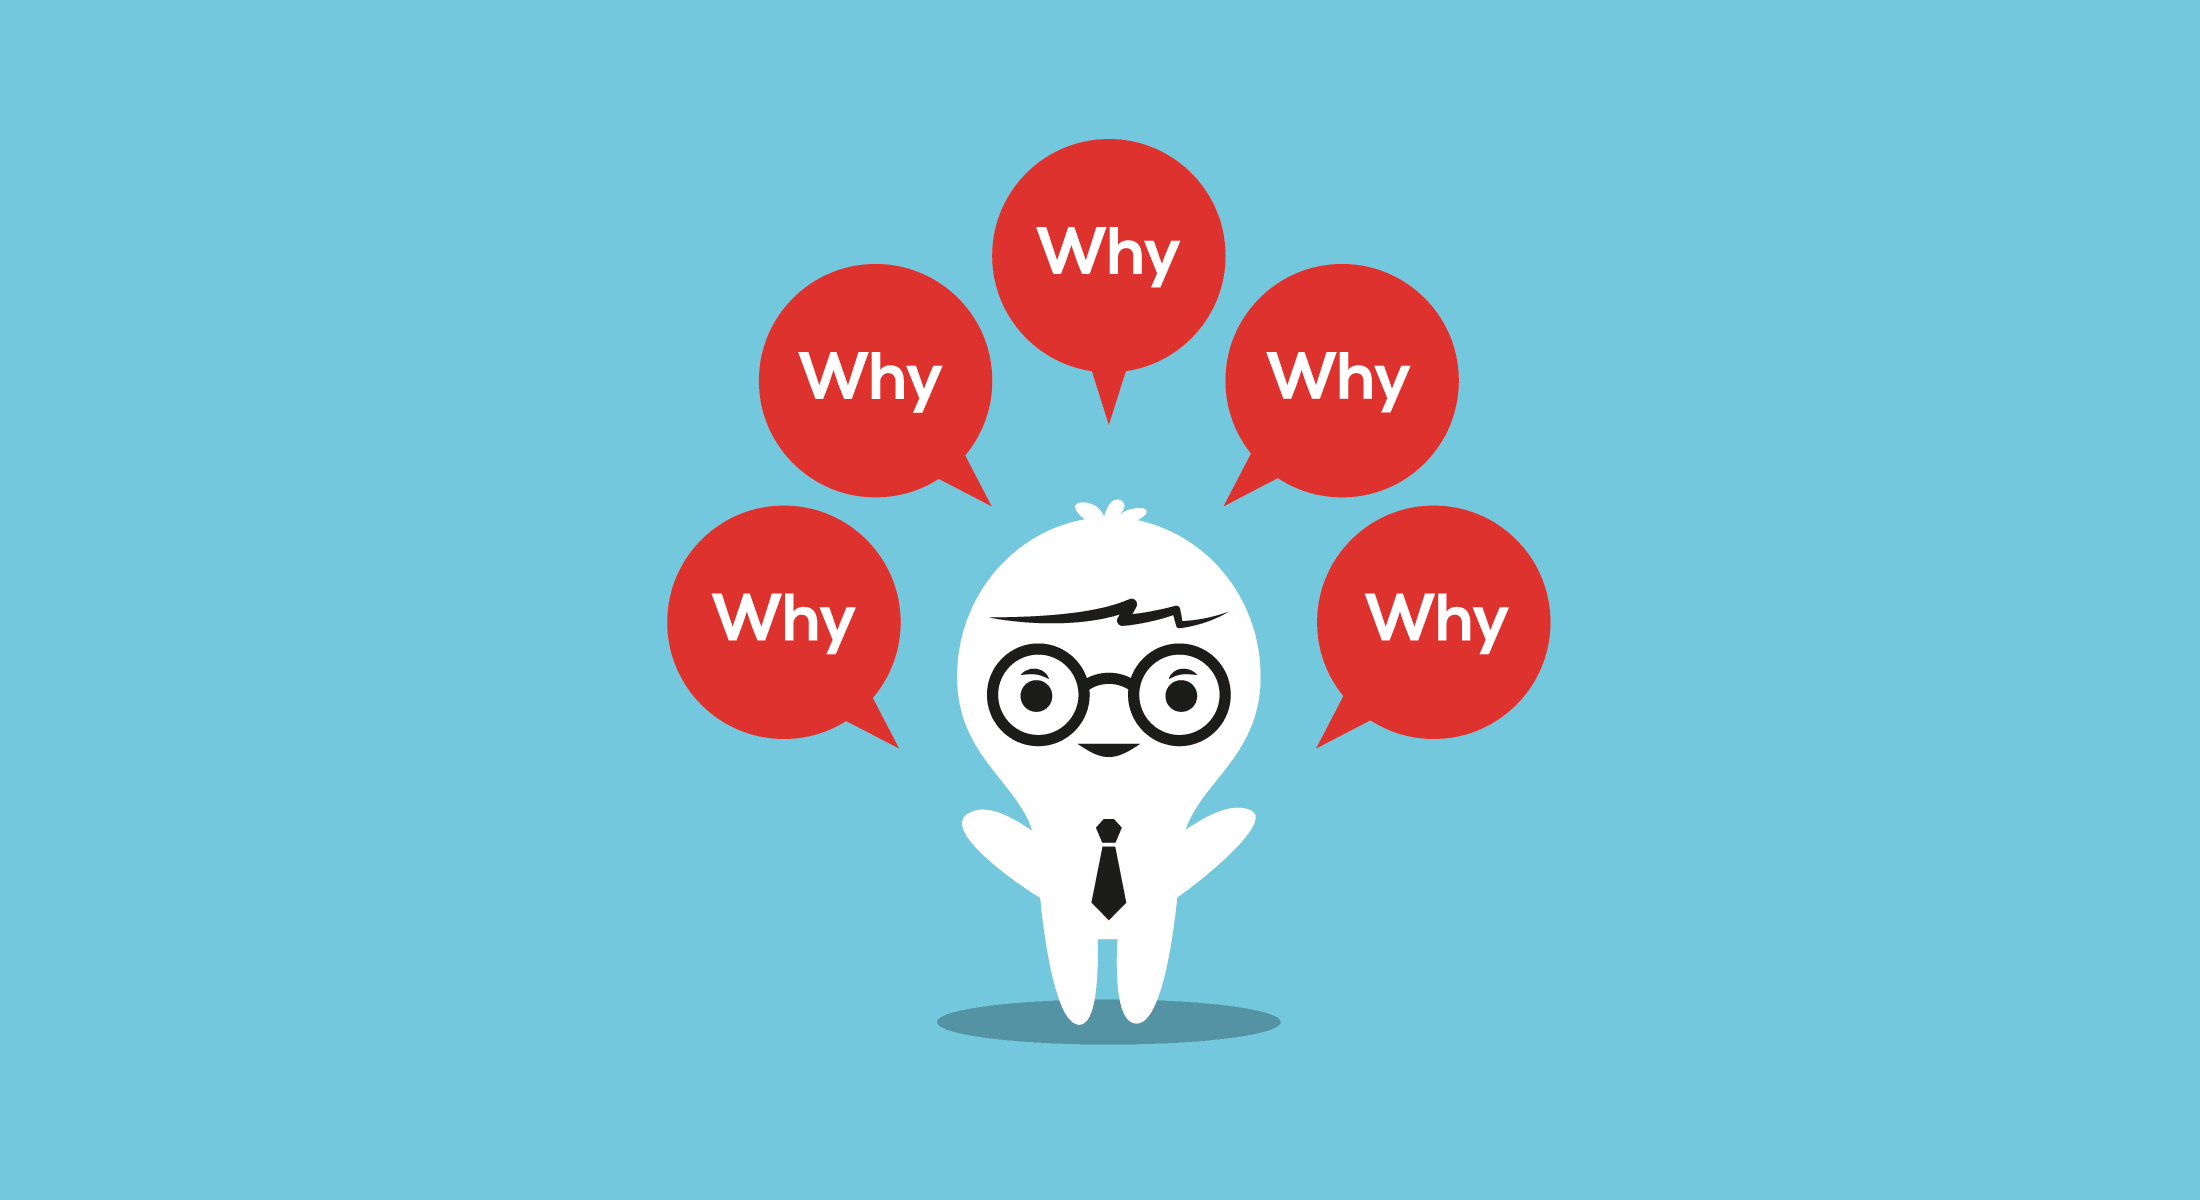 How often should you ask Why?